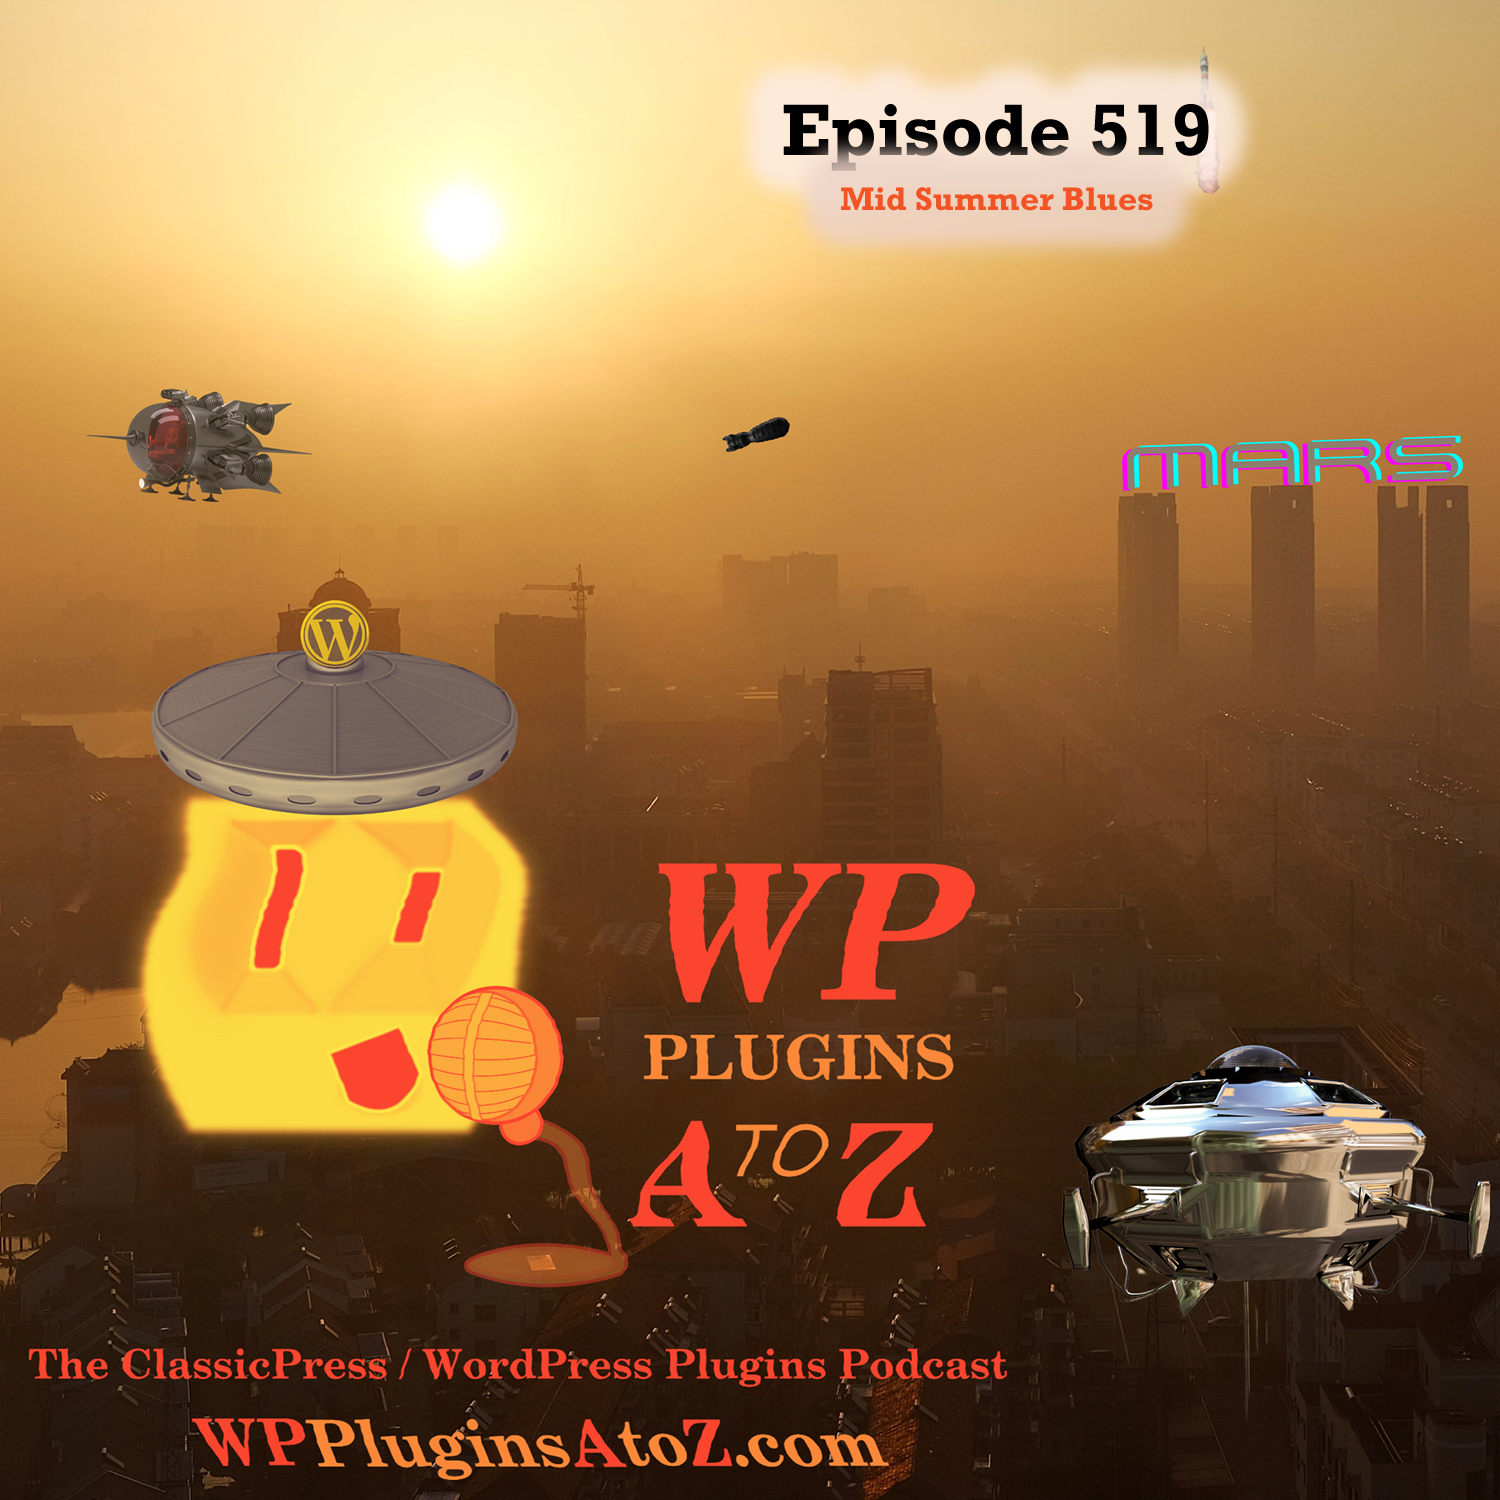 Mid Summer Blues It's Episode 519 - We have plugins for Time Wasting, Saving Time, Deliveries ... and ClassicPress Options. It's all coming up on WordPress Plugins A-Z! Orderable Pro, WoPo Minesweeper, One Page Checkout for WooCommerce ....... and ClassicPress options on Episode 519.